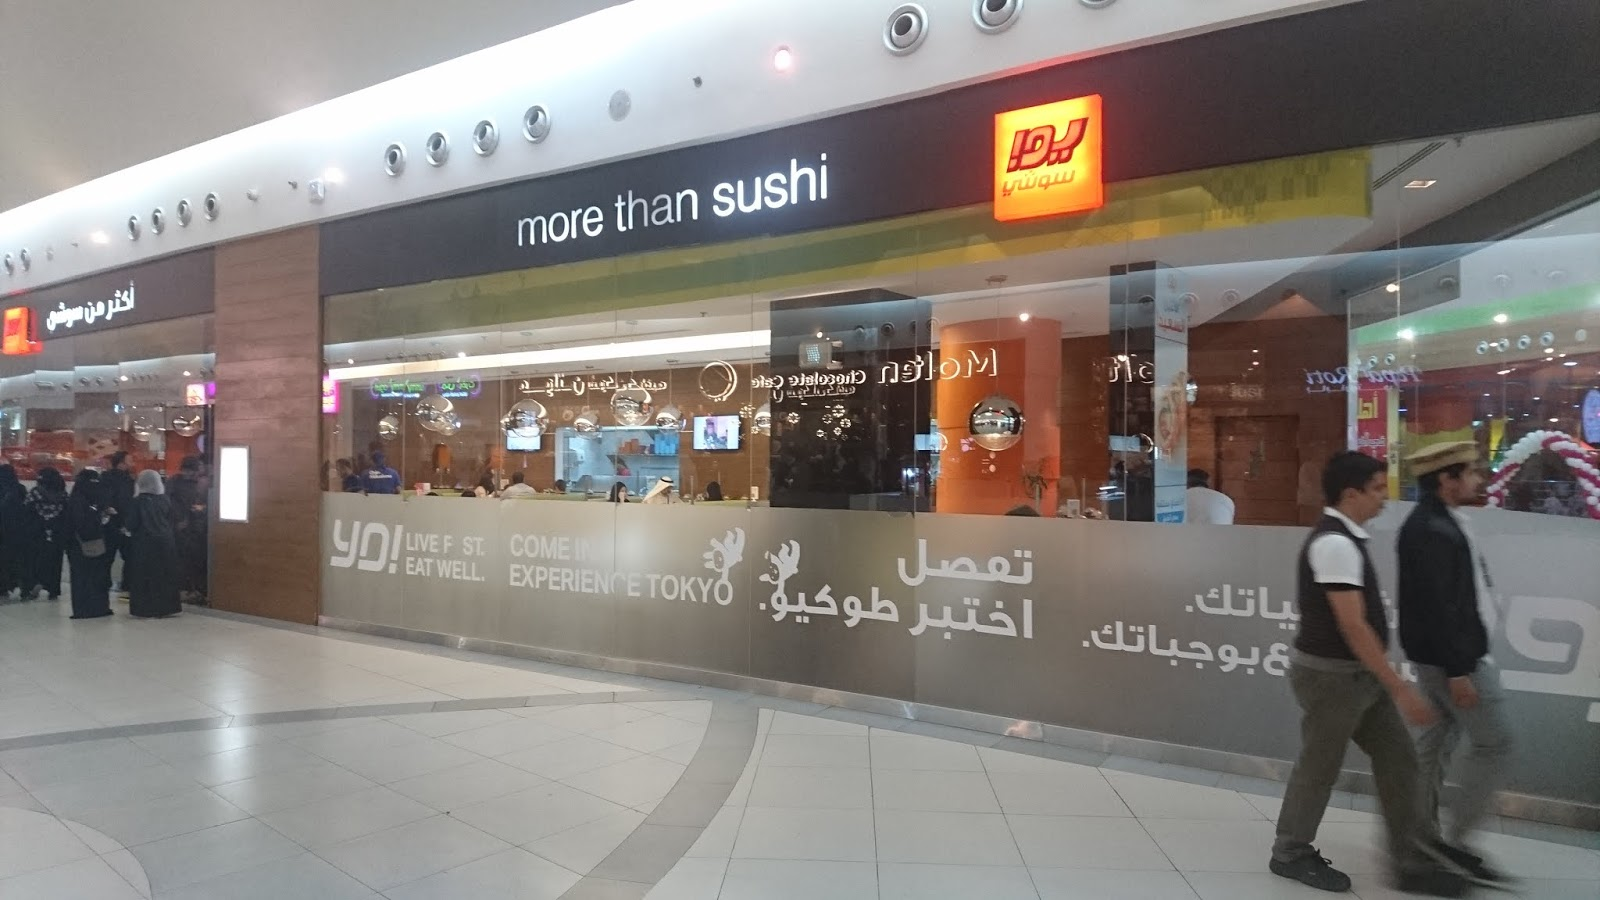 A Taste Of Saudi Arabia: More Than Sushi - Dhahran